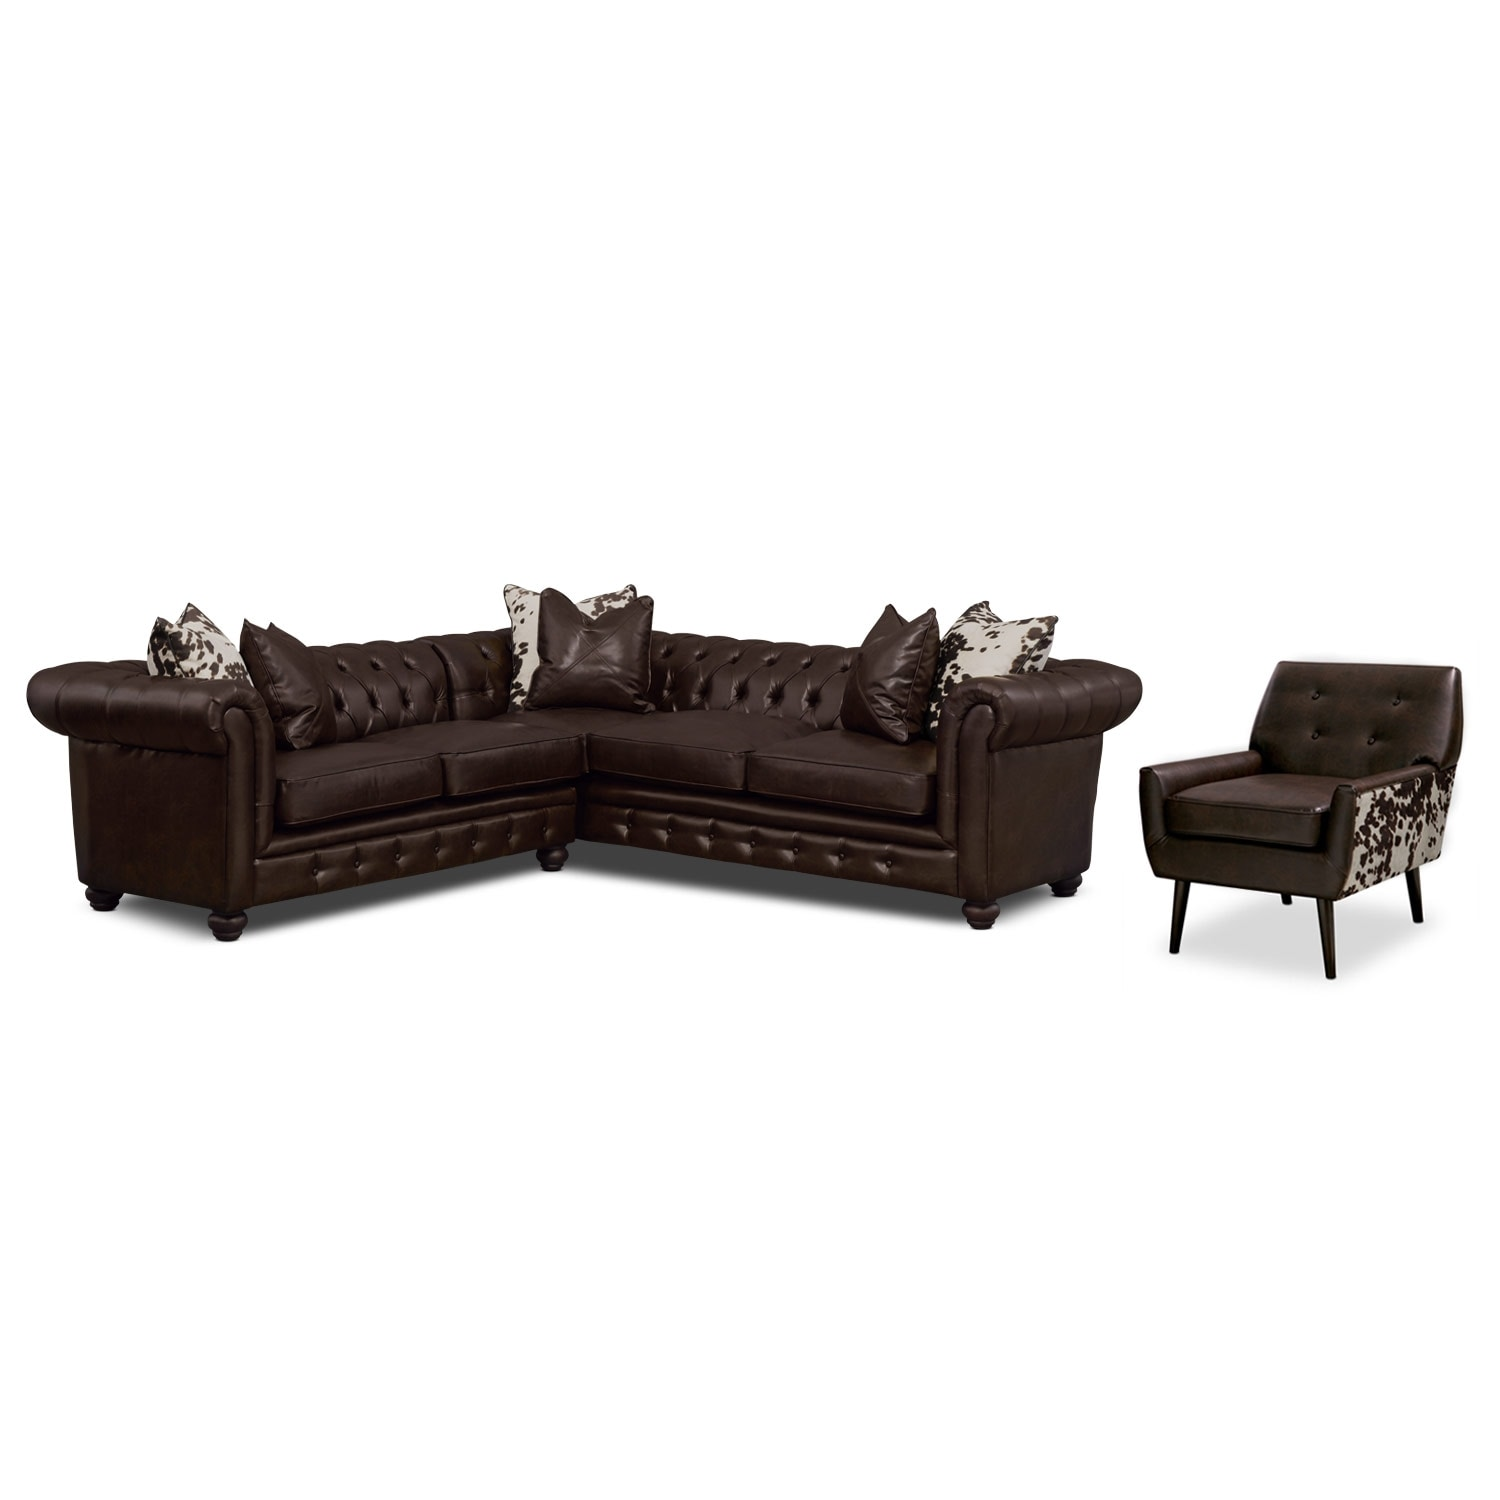 Madeline 2-Piece Sectional and Accent Chair - Chocolate